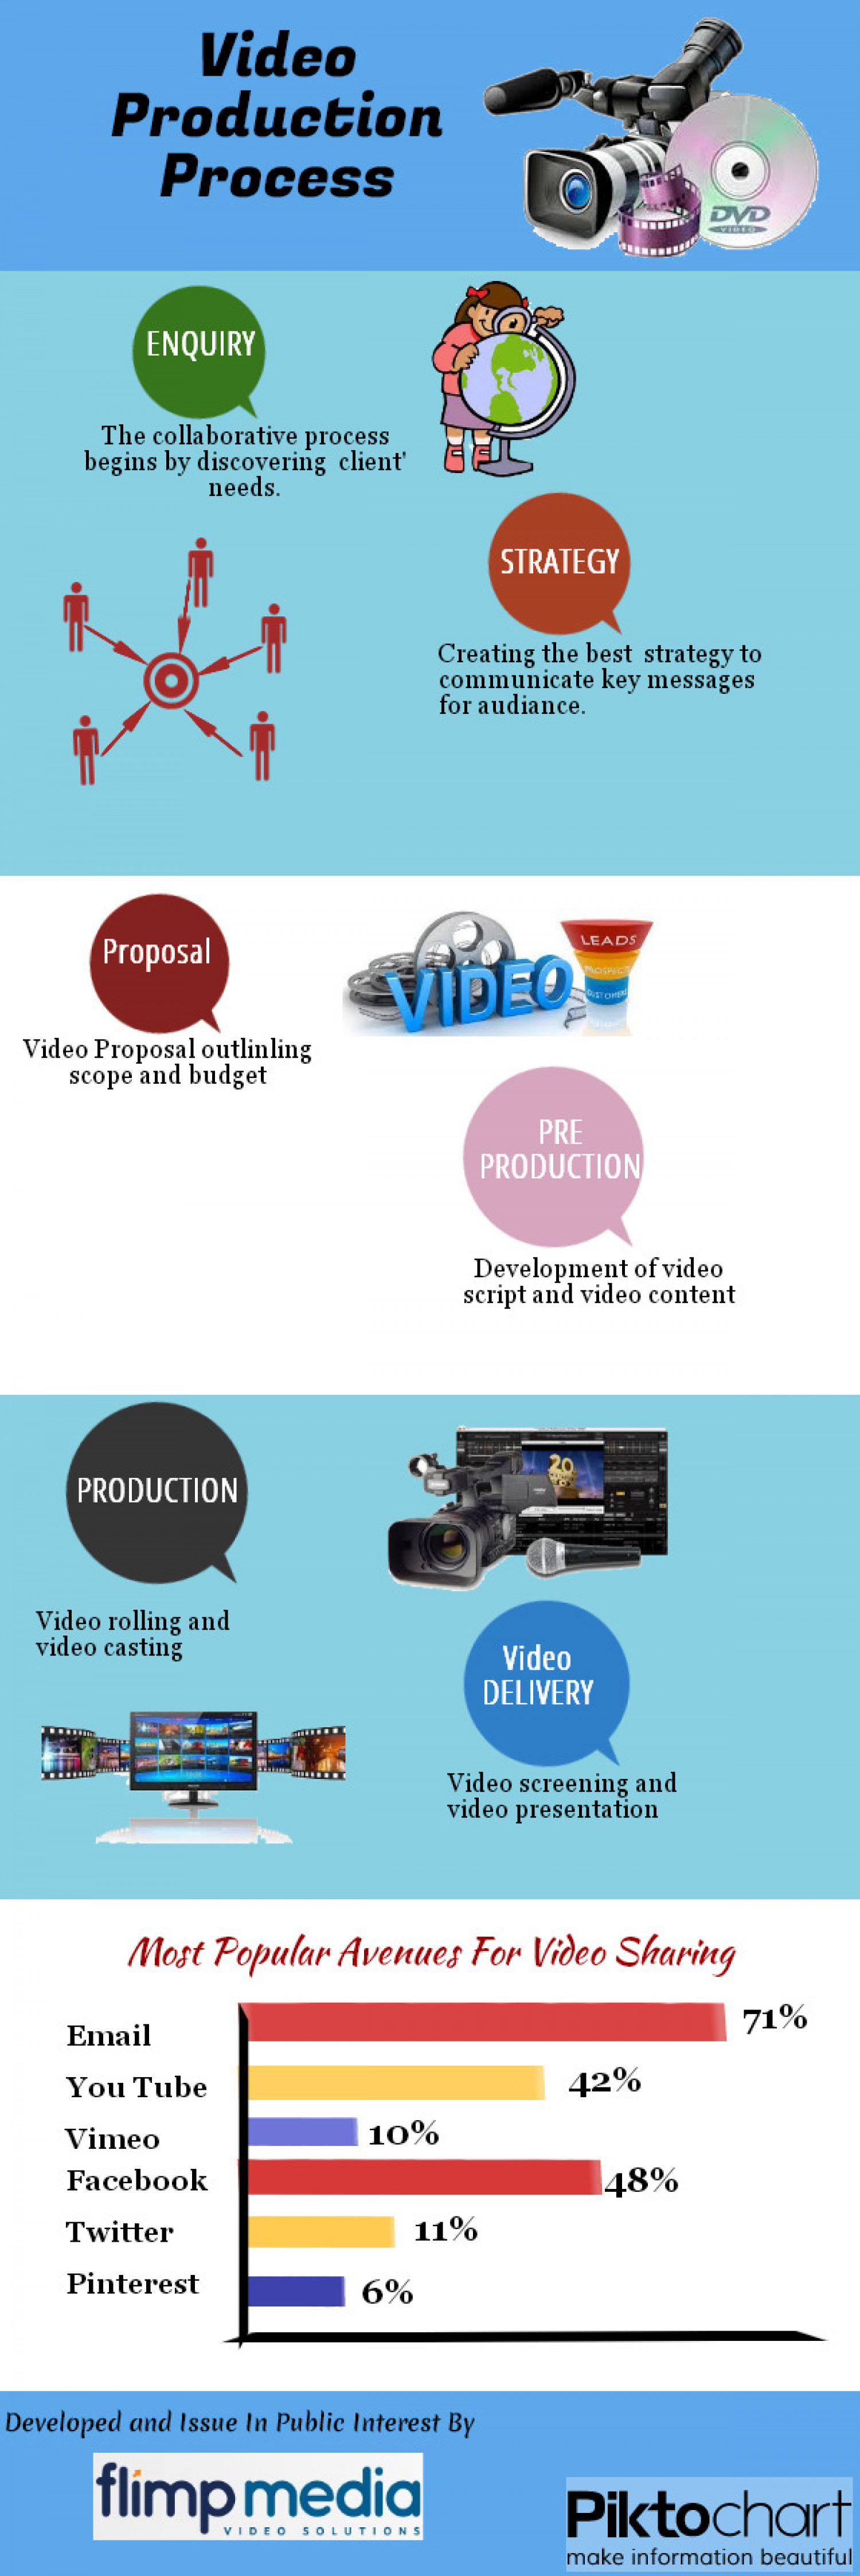 Video Production Process Infographic